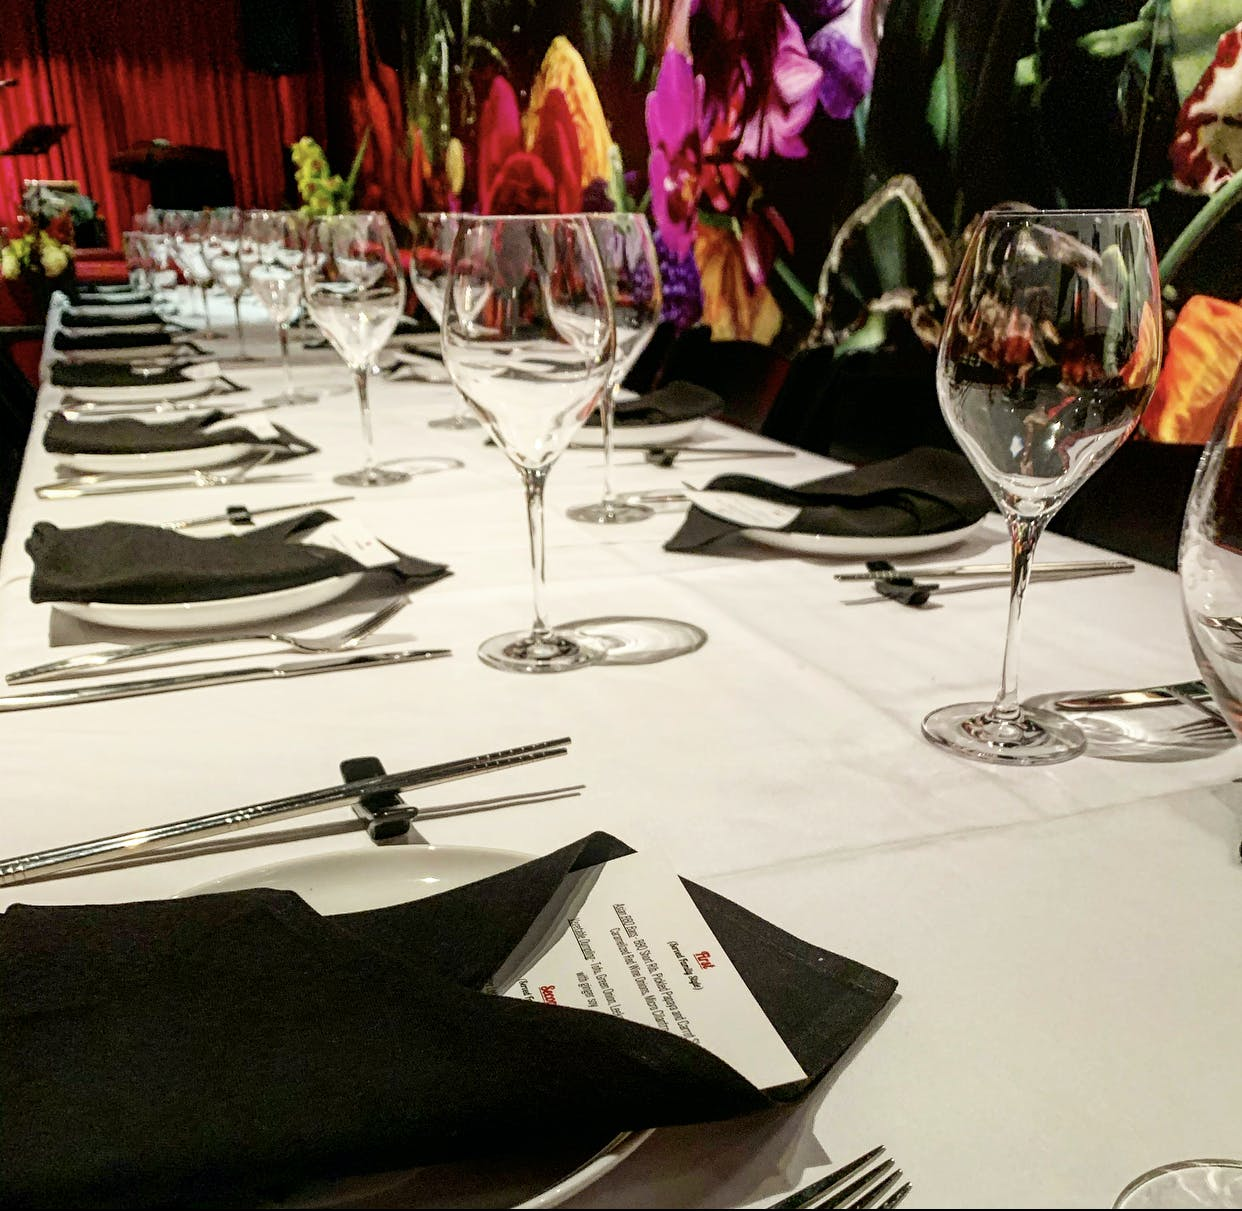 a large table filled with plates and wine cups